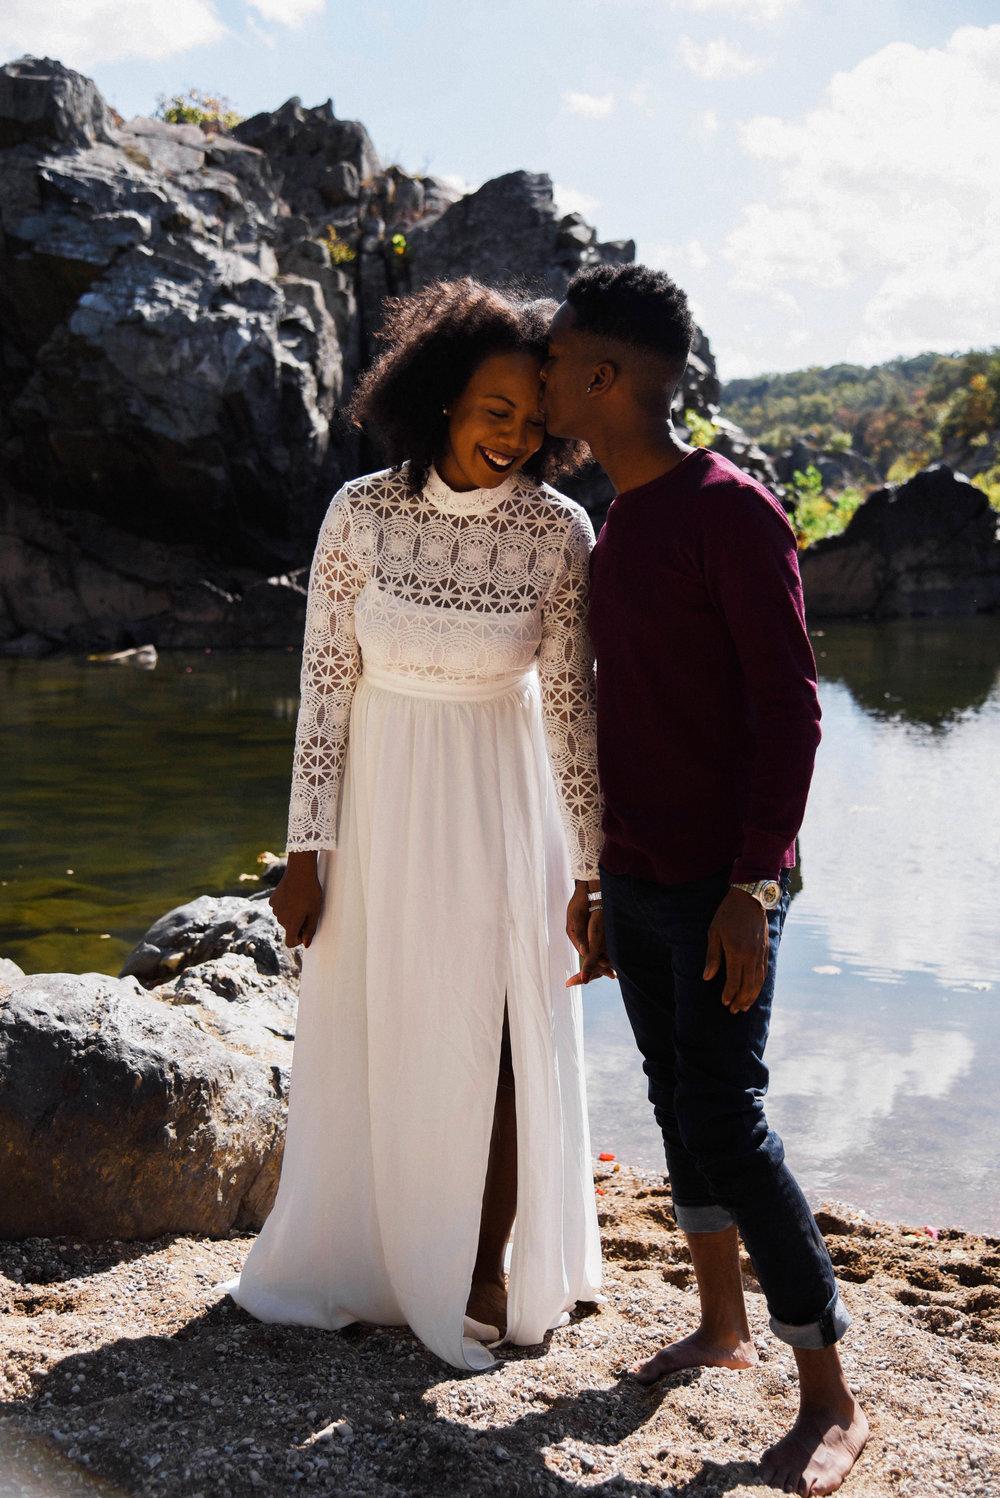 See Aubrey & Alexis' full session here